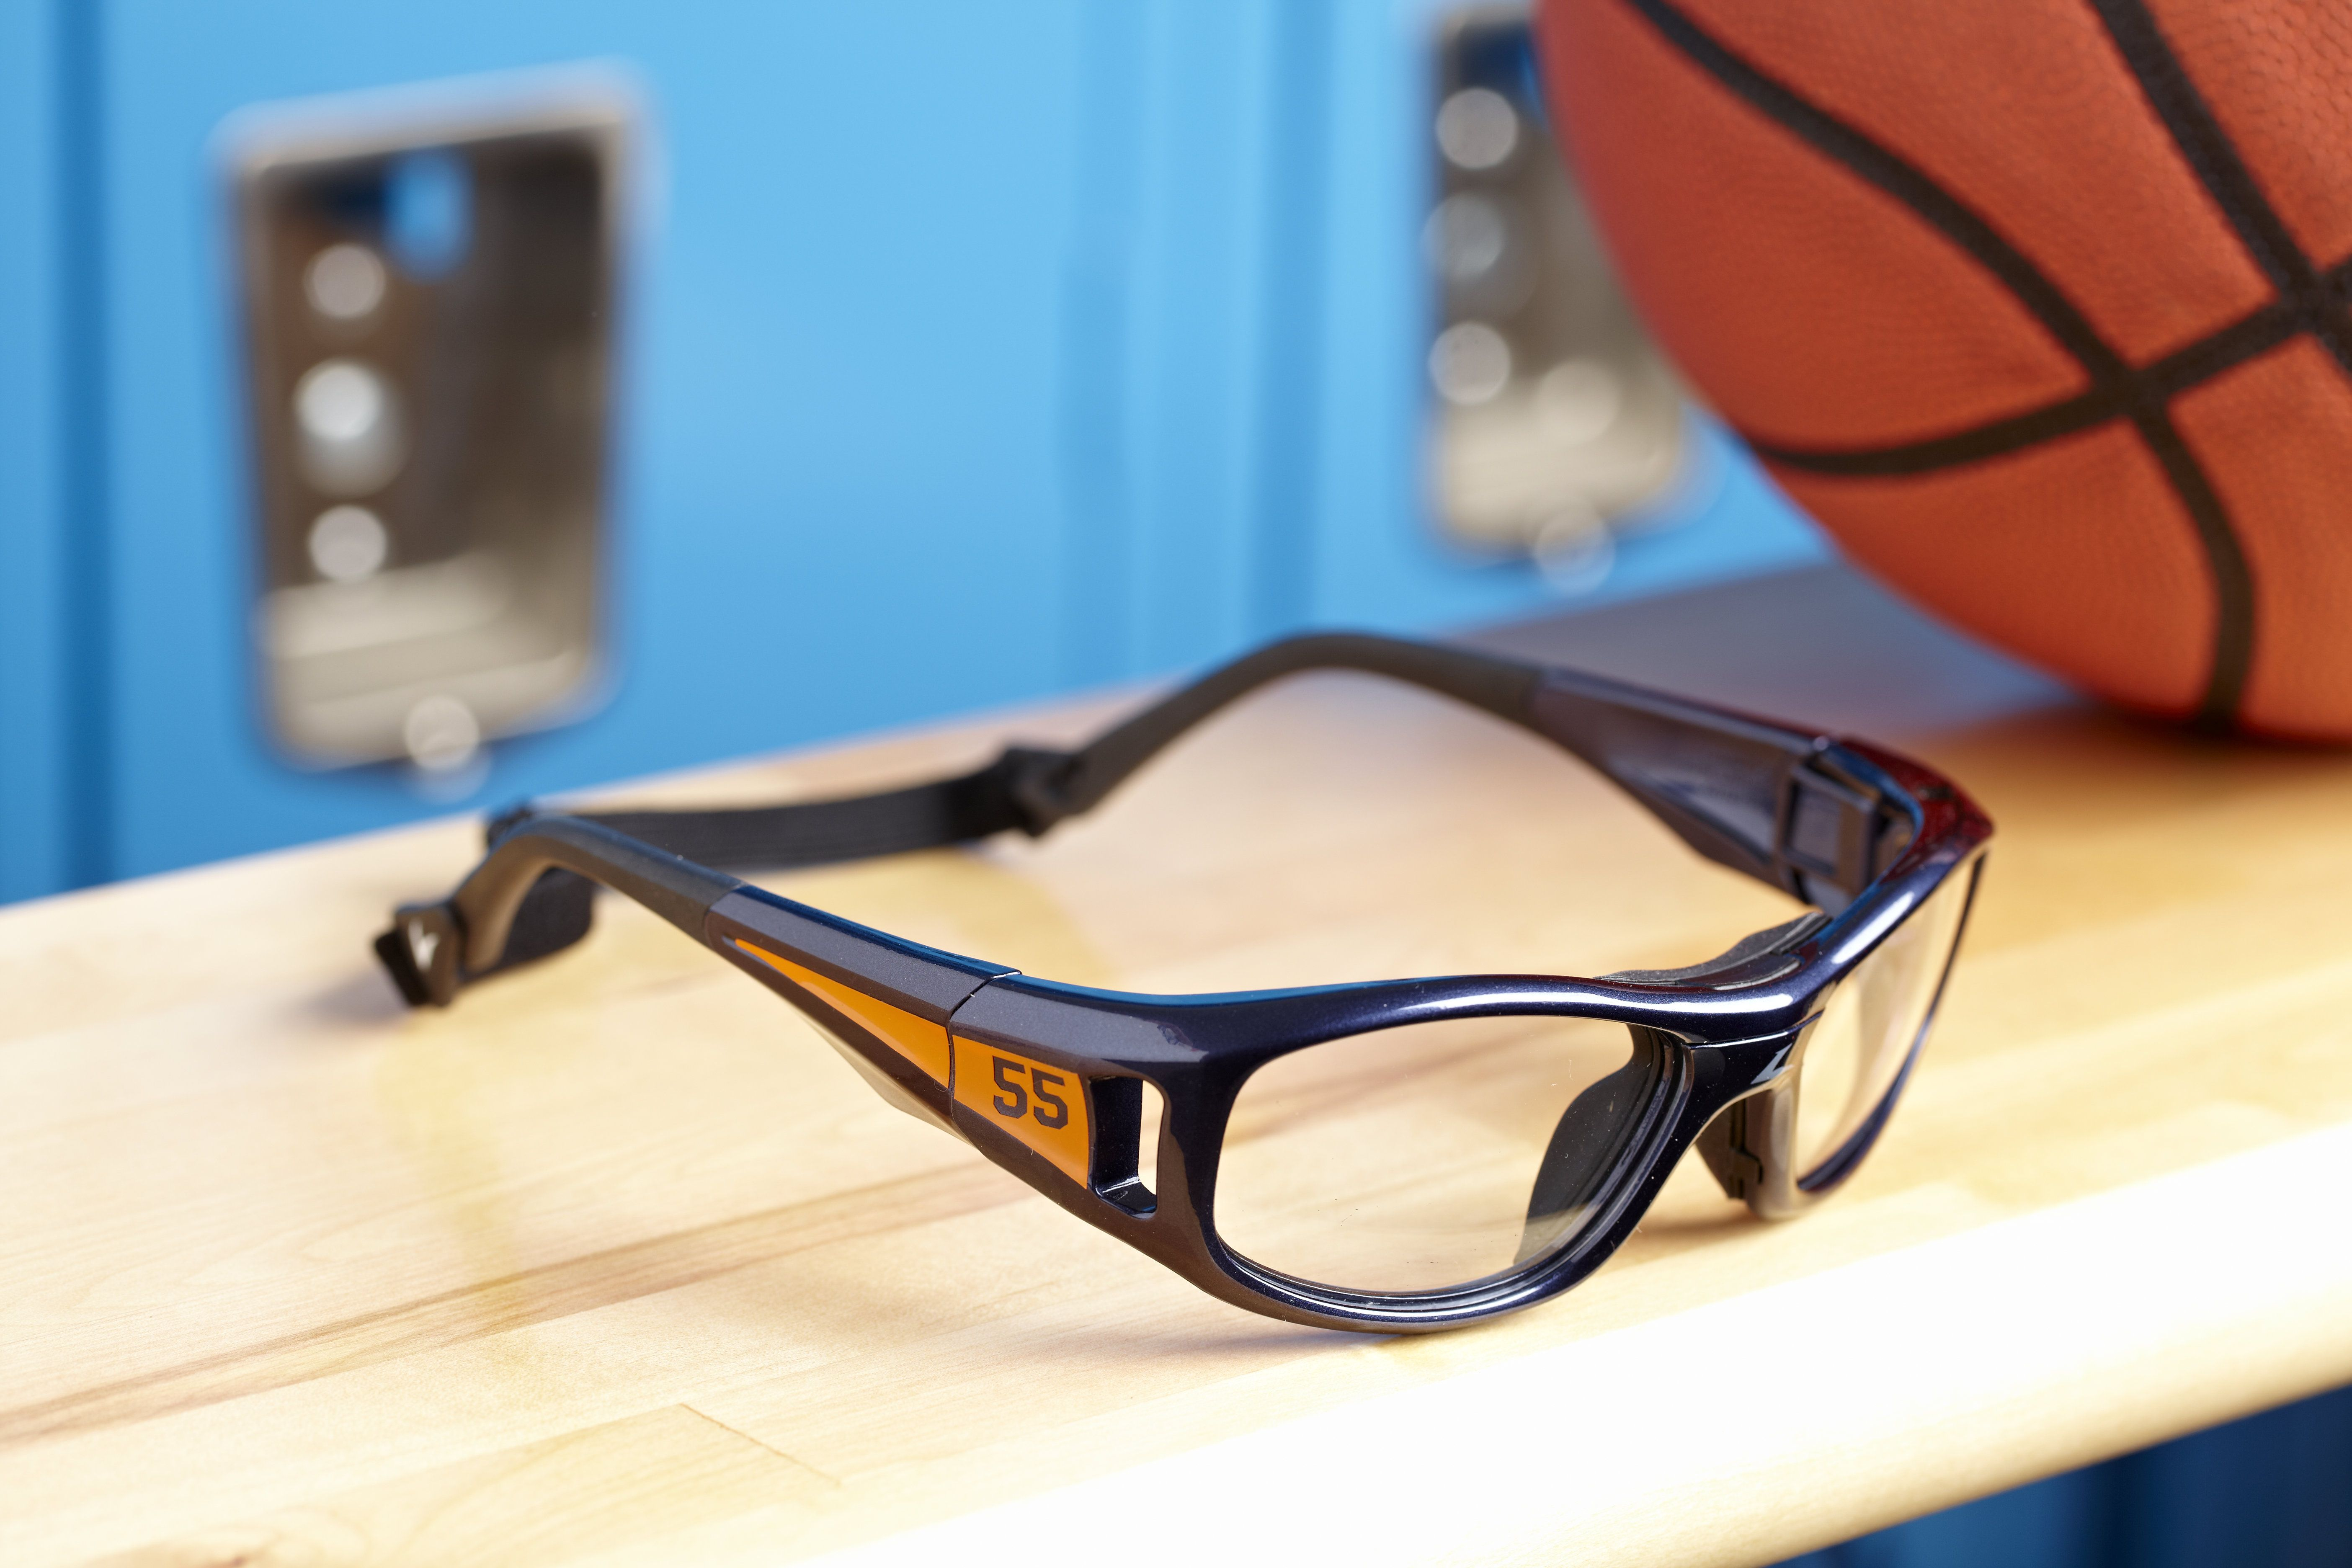 41753a3da74 Leader C2 Rx Sports Goggles with v-port technology! Can also be customized  with team colors and numbers!